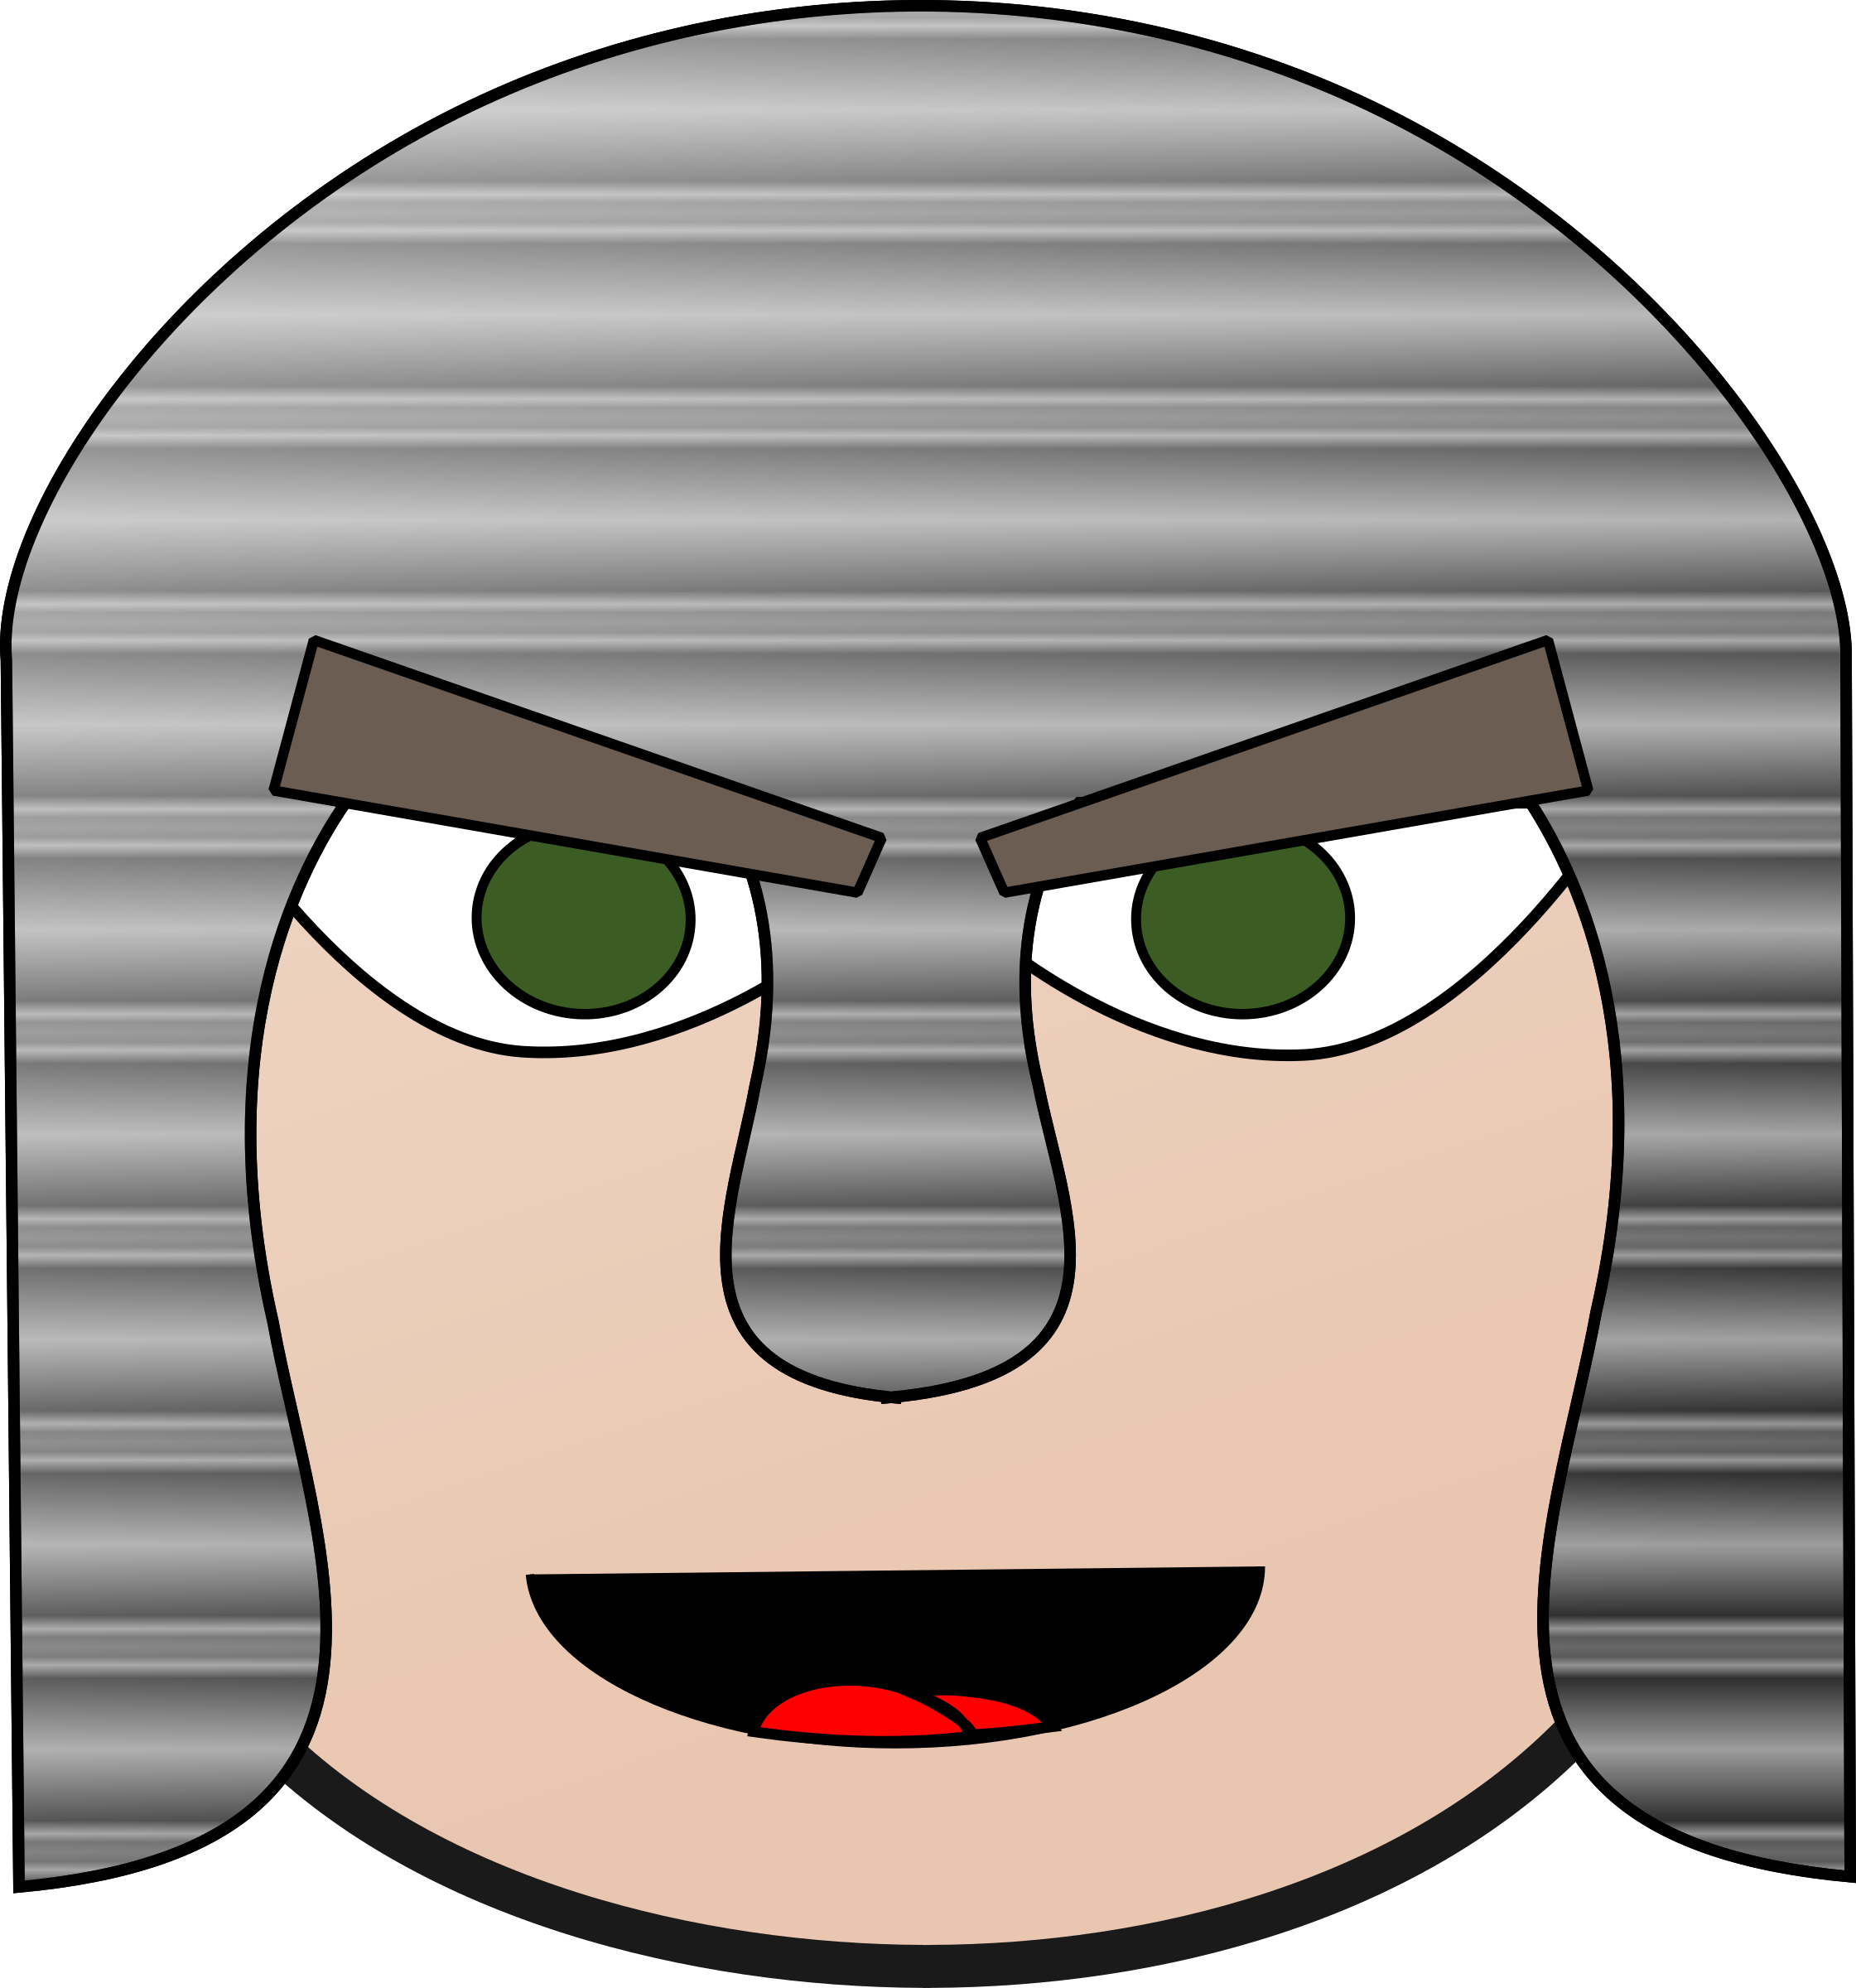 Big image png. Knight clipart face knight